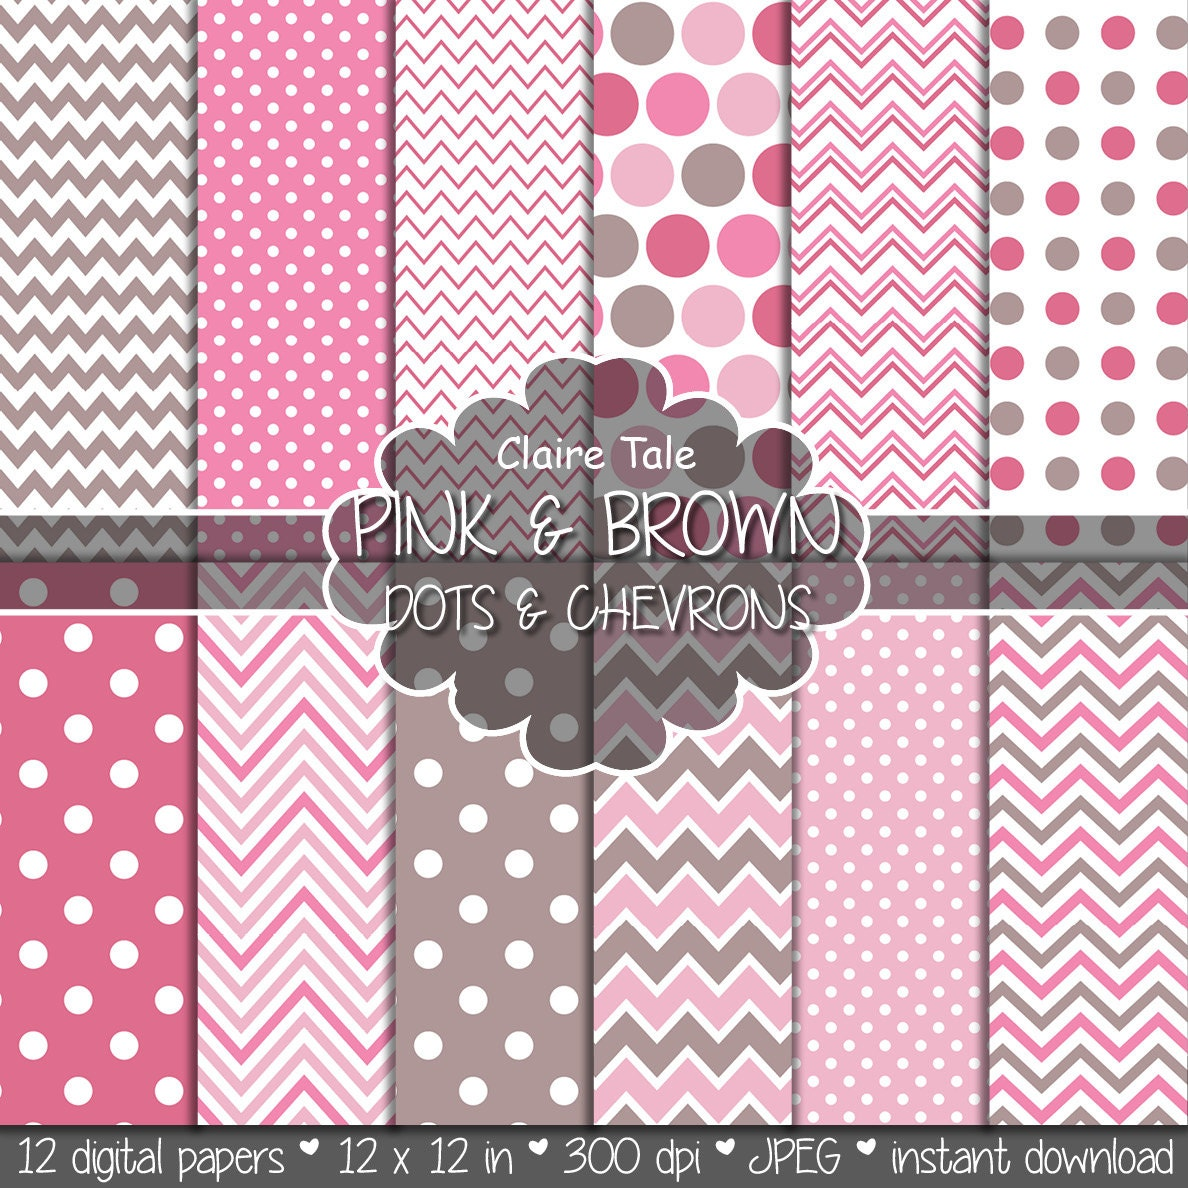 Pink and brown polka dots and chevrons background Pink and